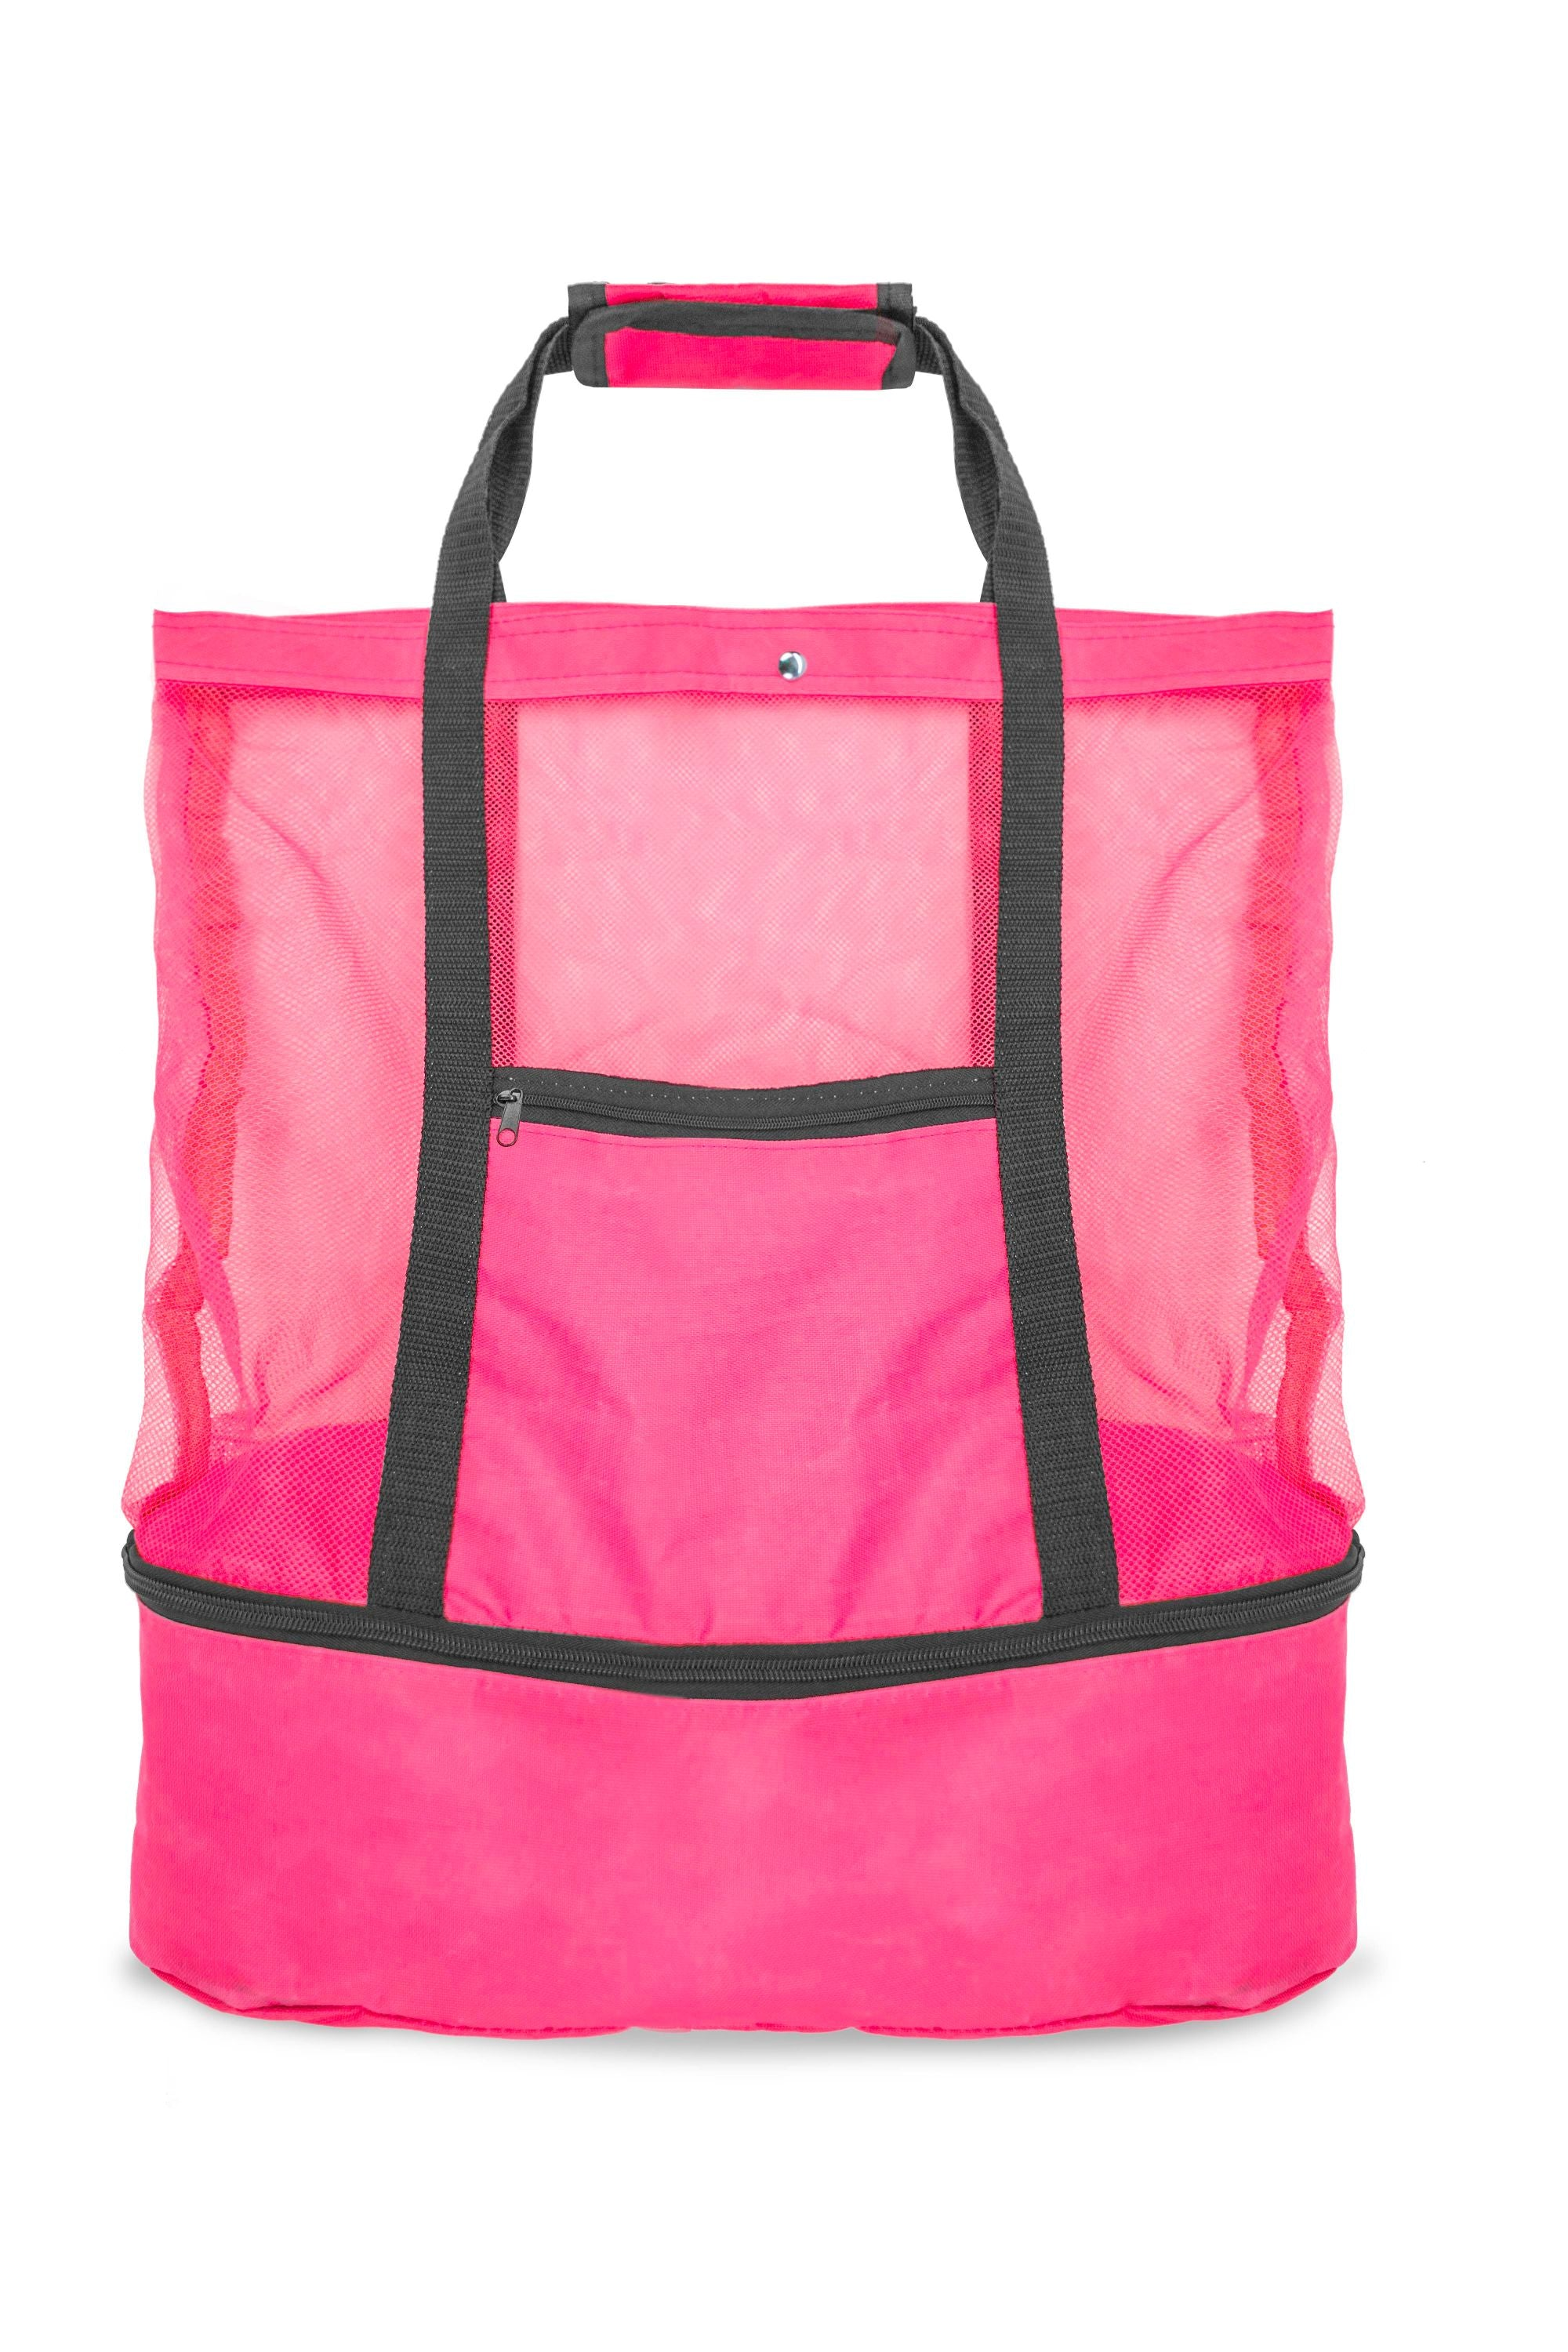 shopify-Insulated Cooler Picnic Beach Tote Bag-7